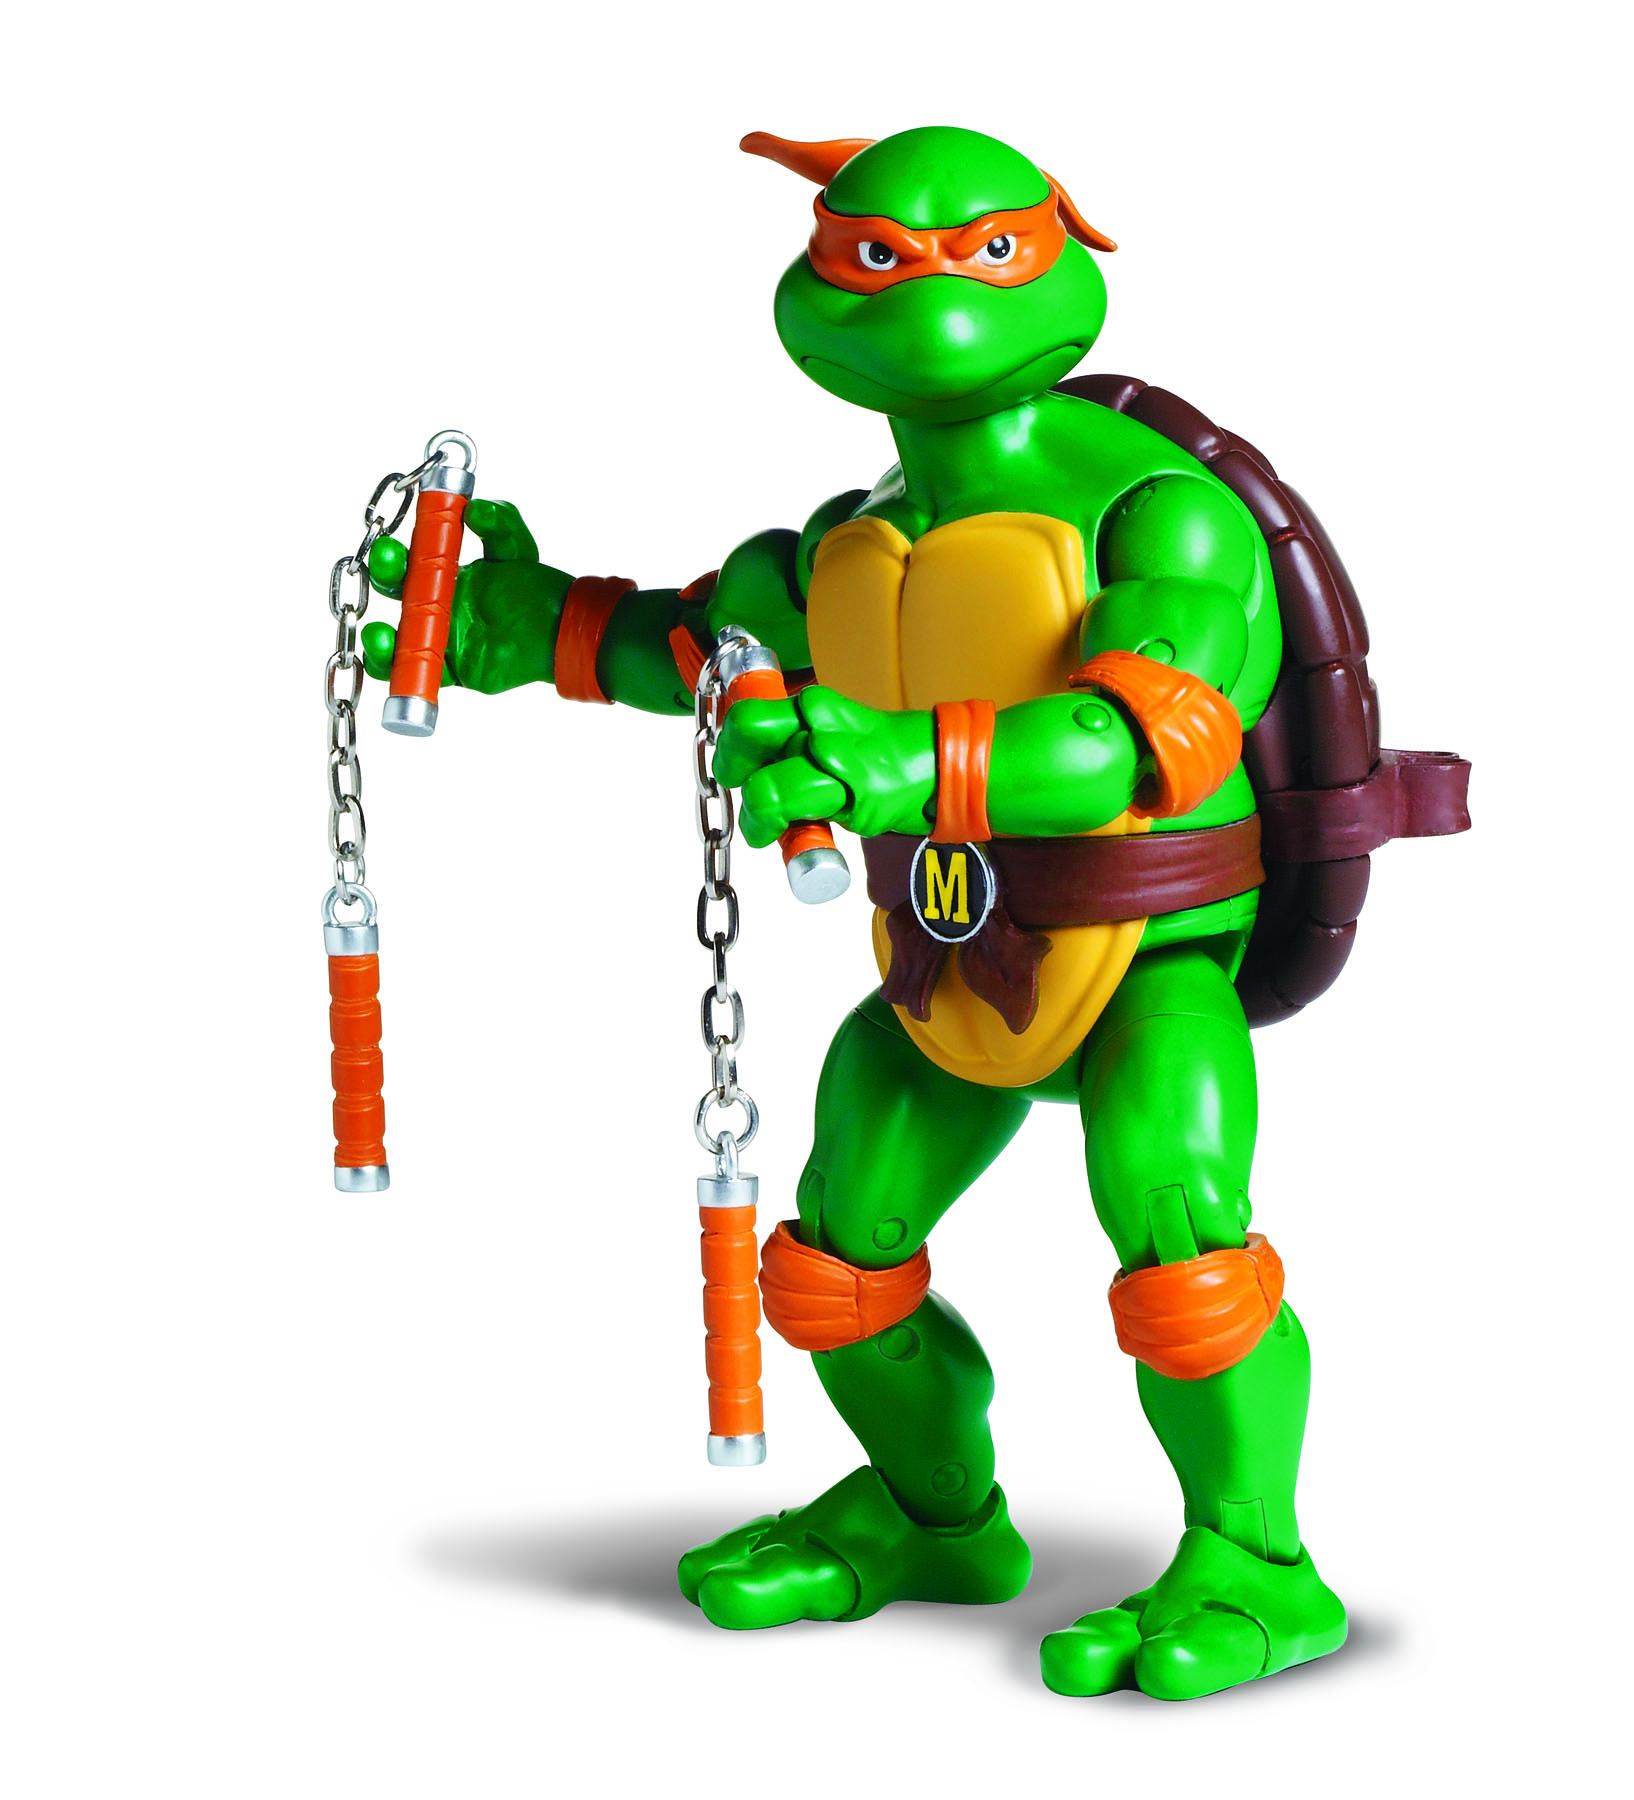 Teenage Mutant Ninja Turtles 2012 Neuralizer Toy : Toy fair playmates 'teenage mutant ninja turtles